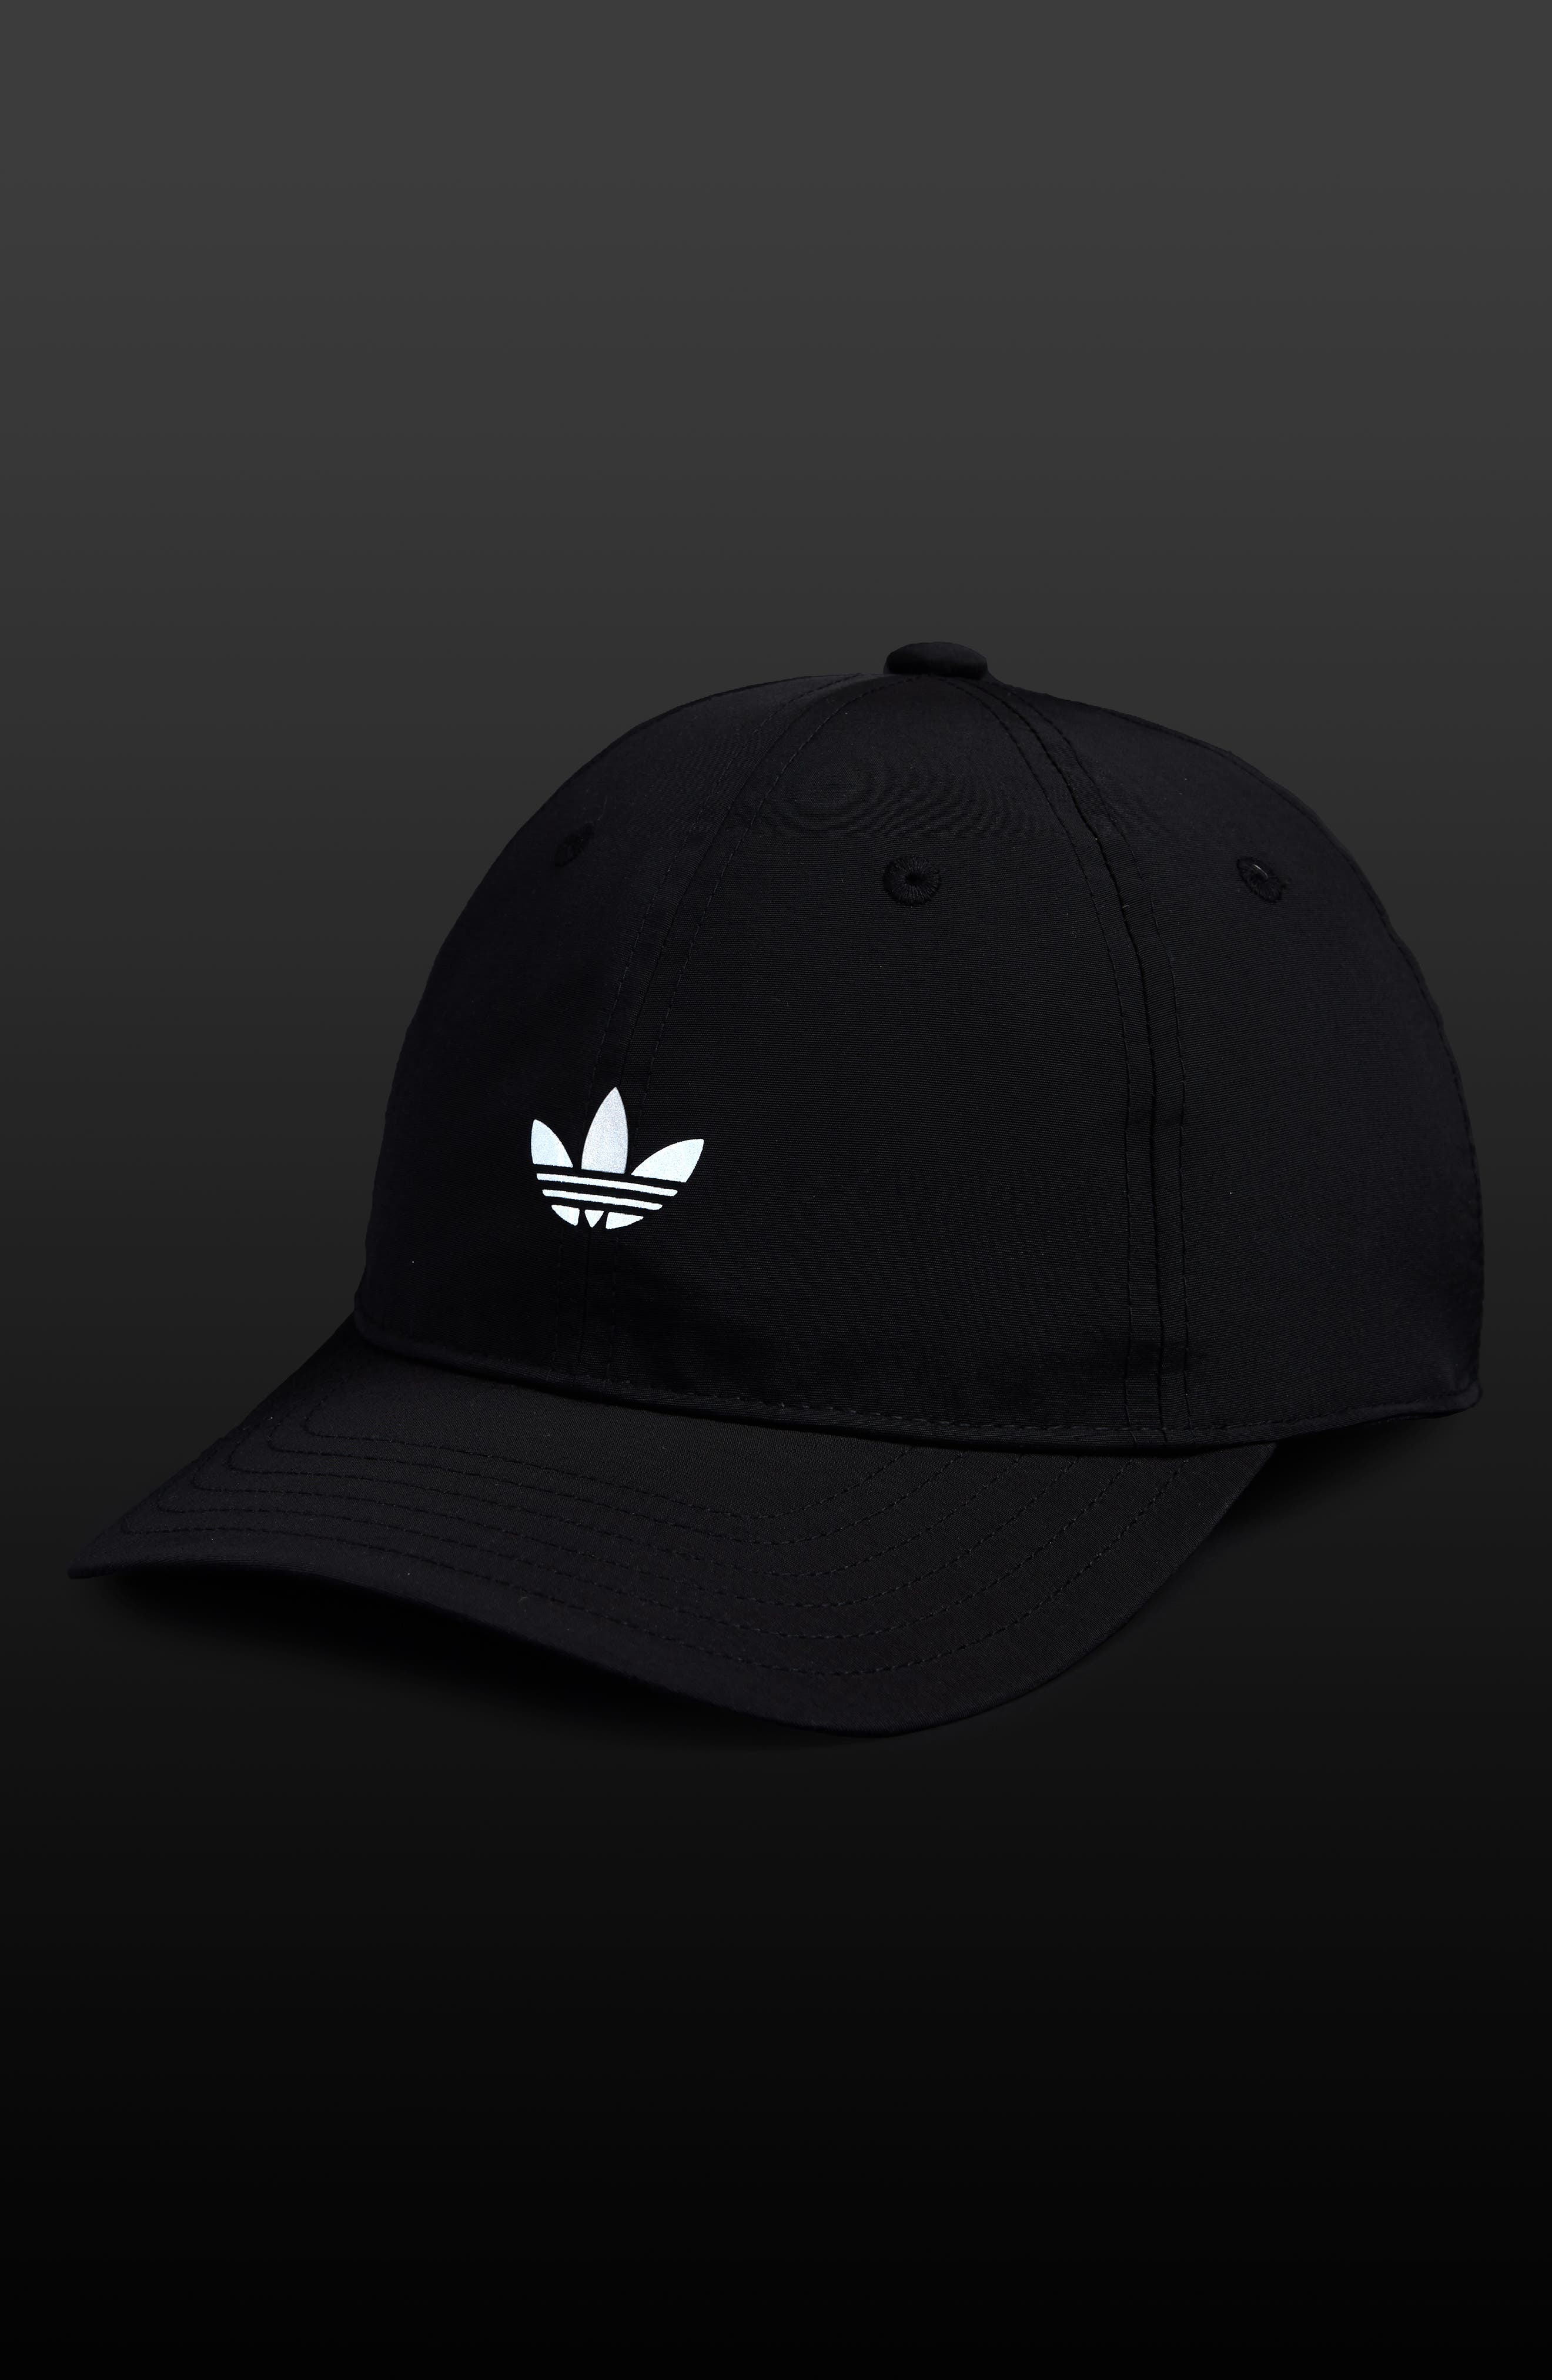 Relaxed Ball Cap,                             Alternate thumbnail 2, color,                             001